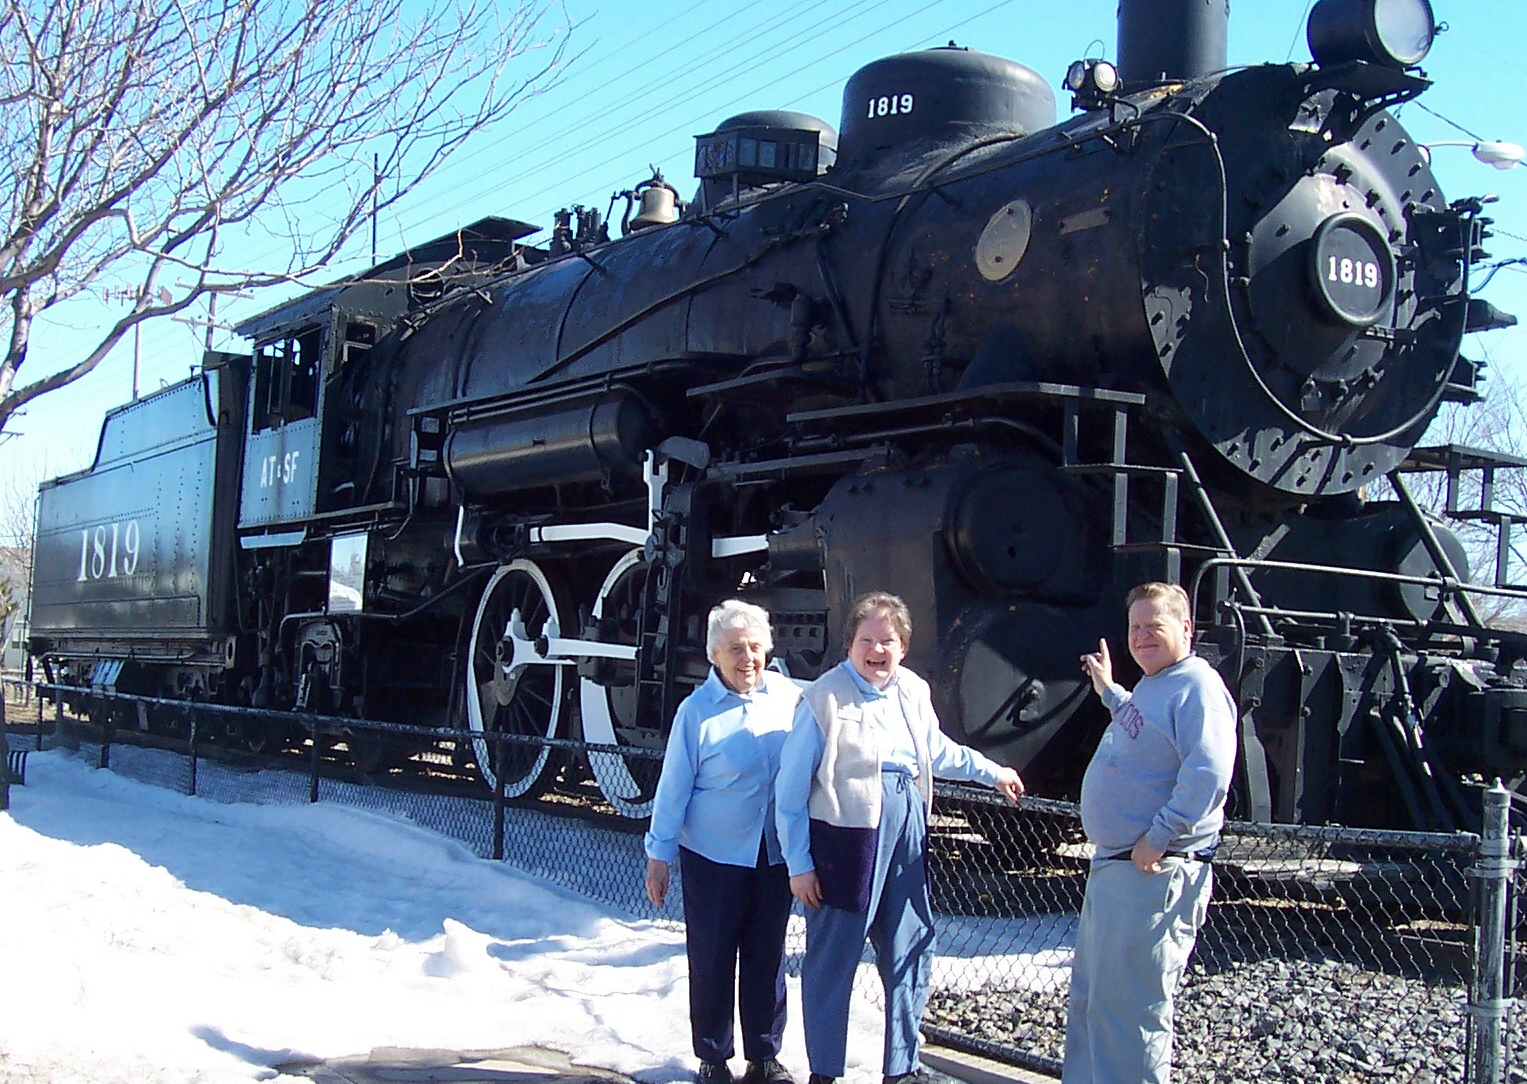 A vintage 1819 locomotive adjacent to the Colorado Welcome Center in Lamar is a local attraction.